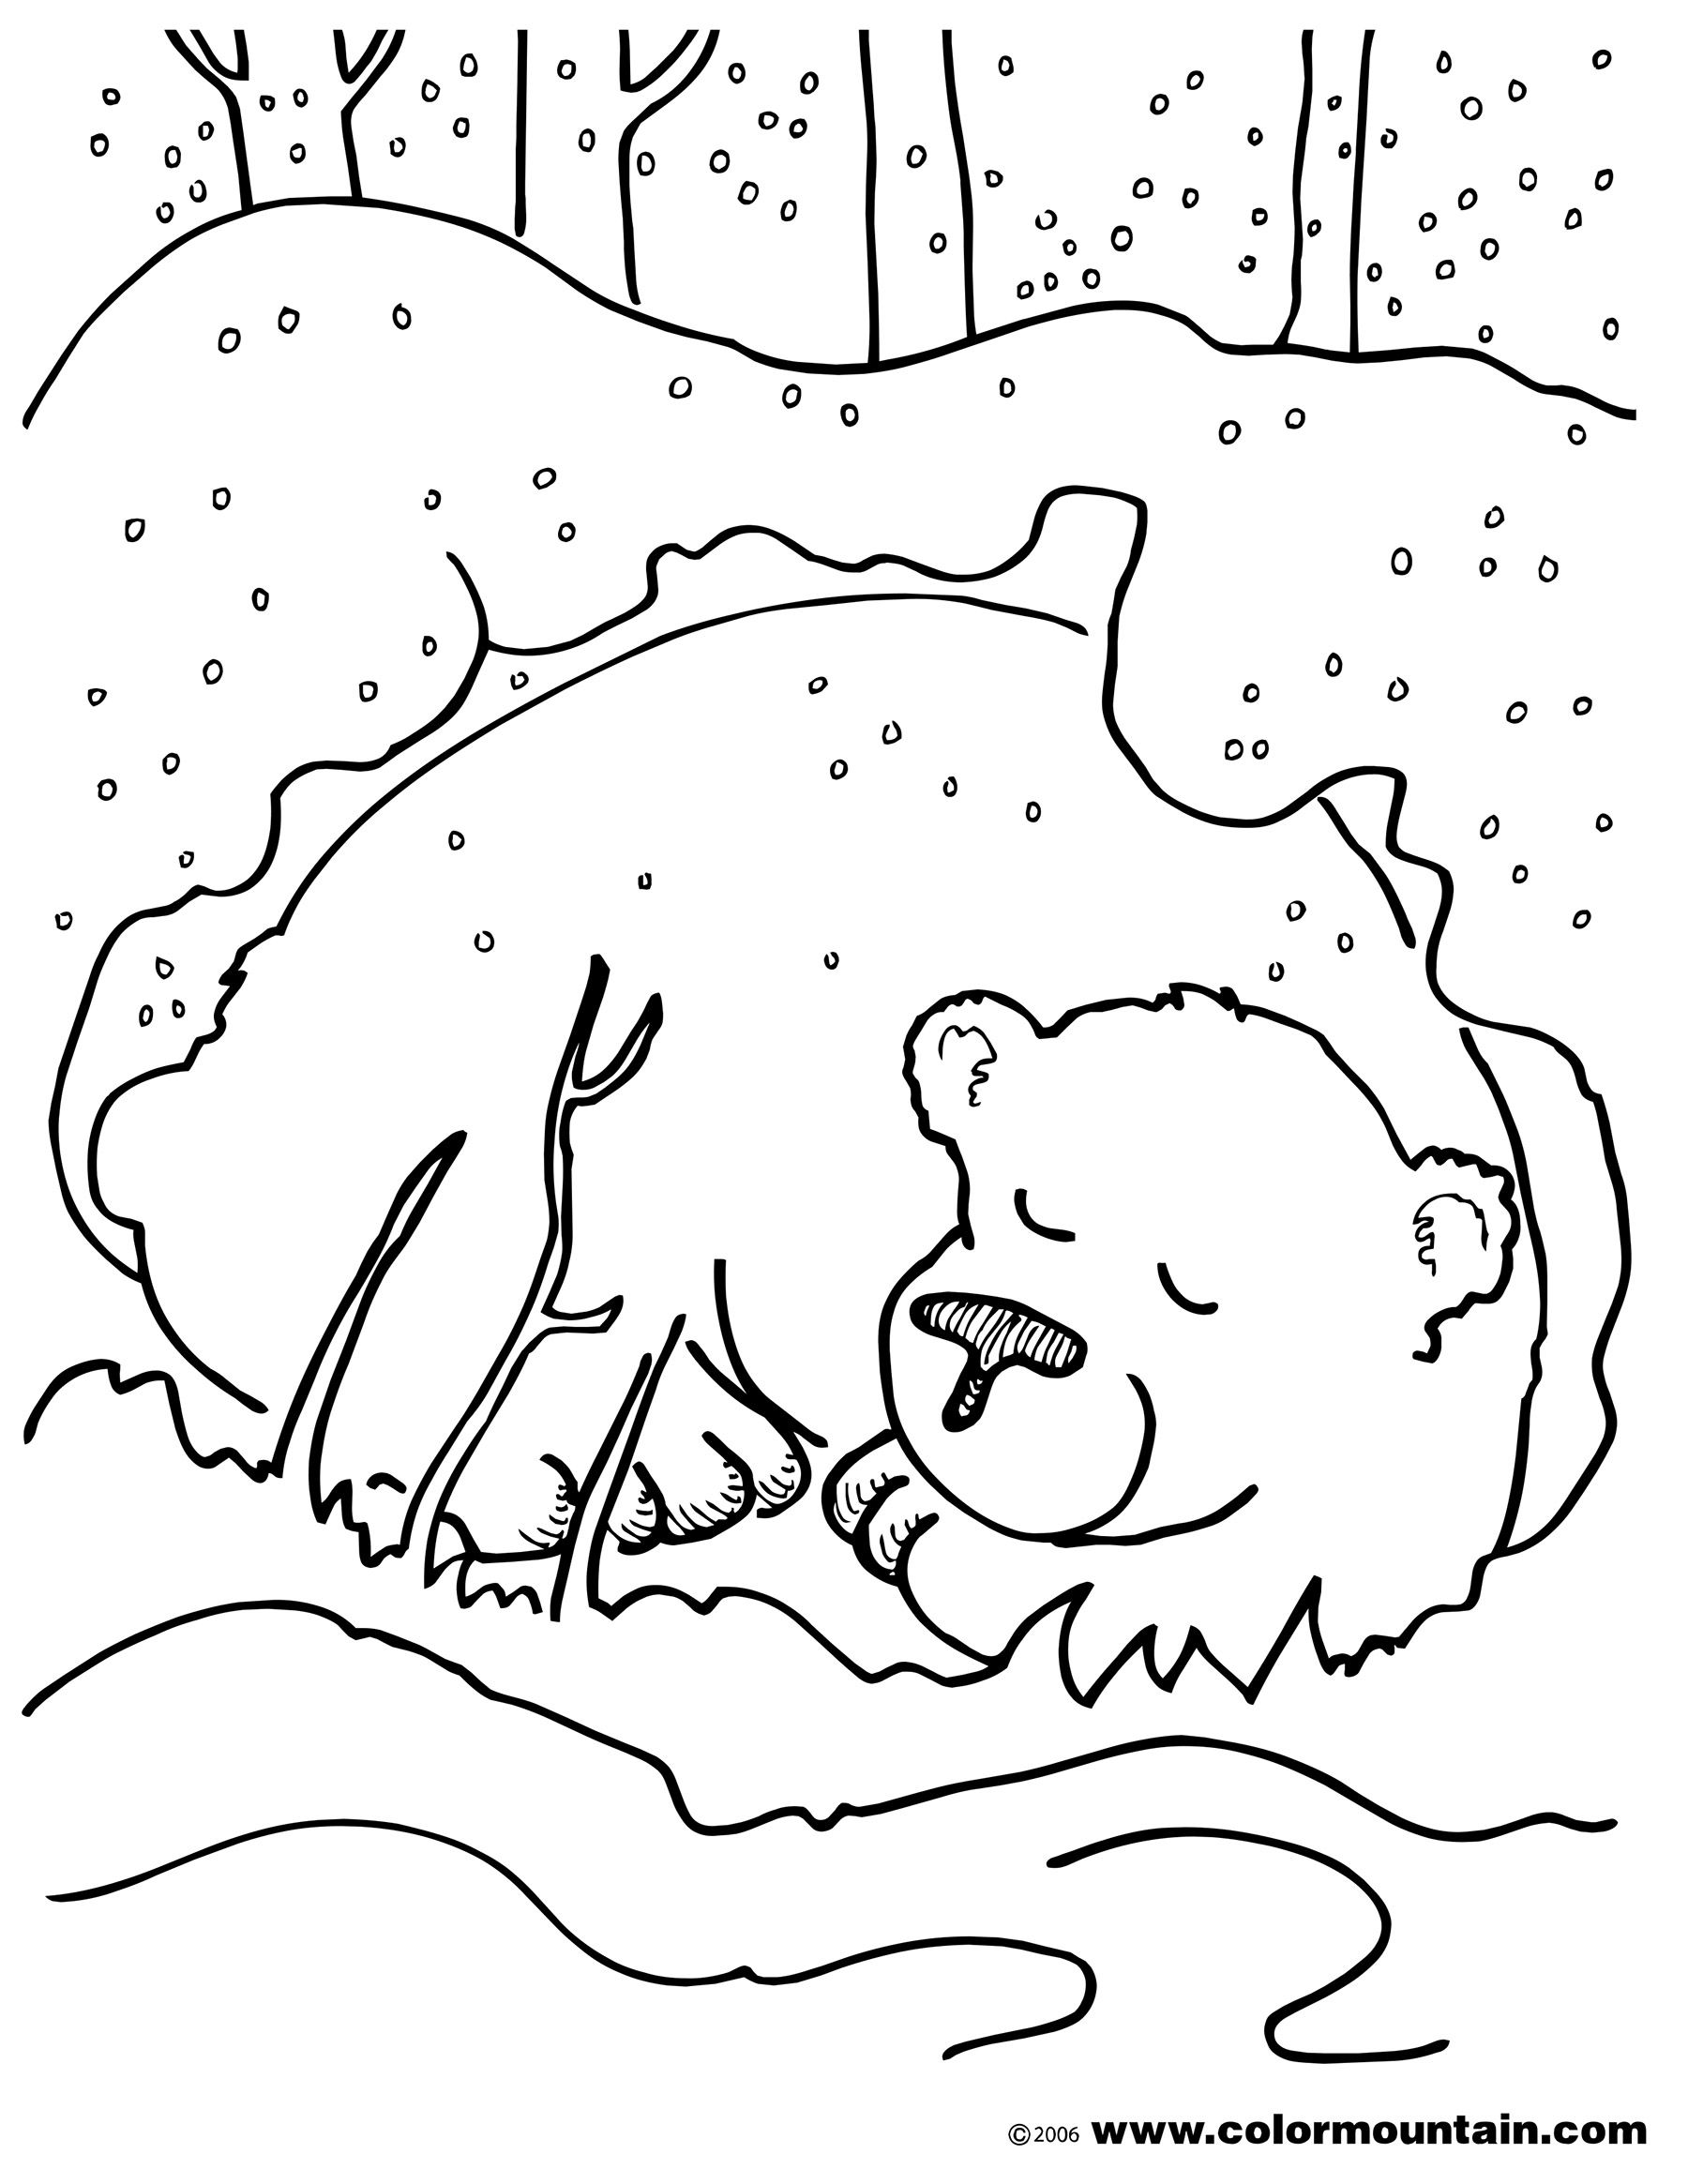 Hibernating bear color sheet coloring page